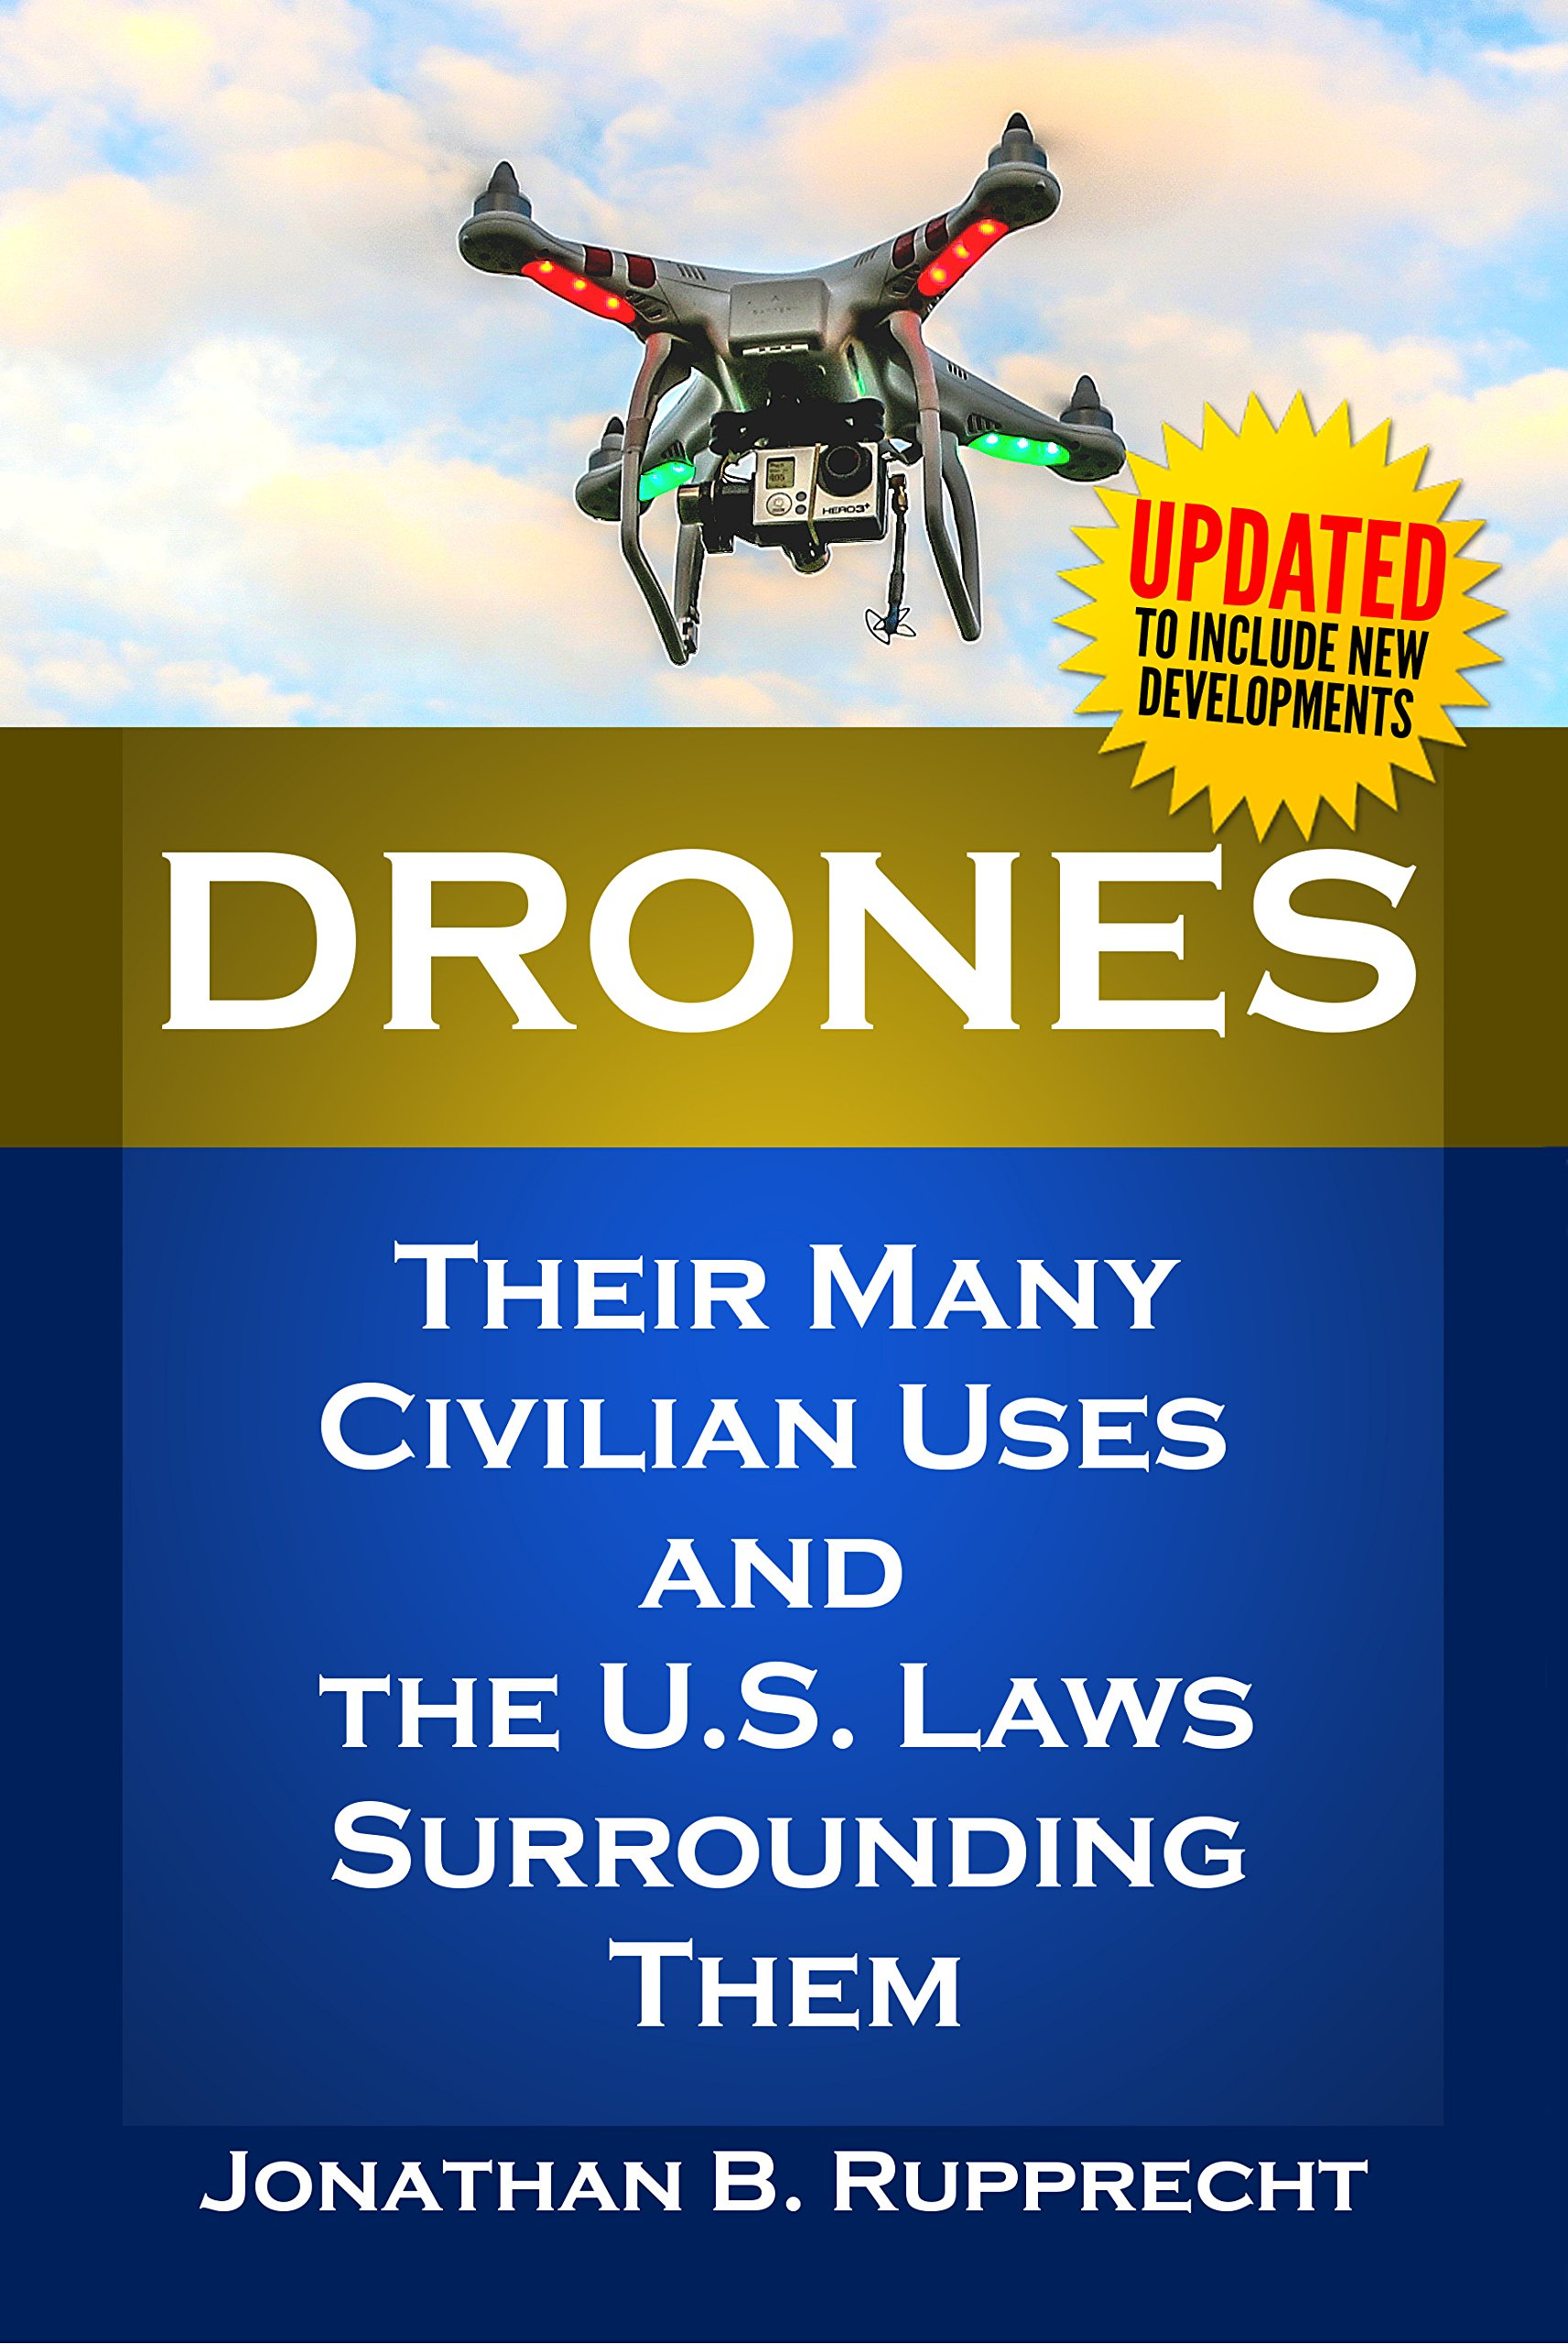 Drones  Their Many Civilian Uses And The U.S. Laws Surrounding Them.  English Edition